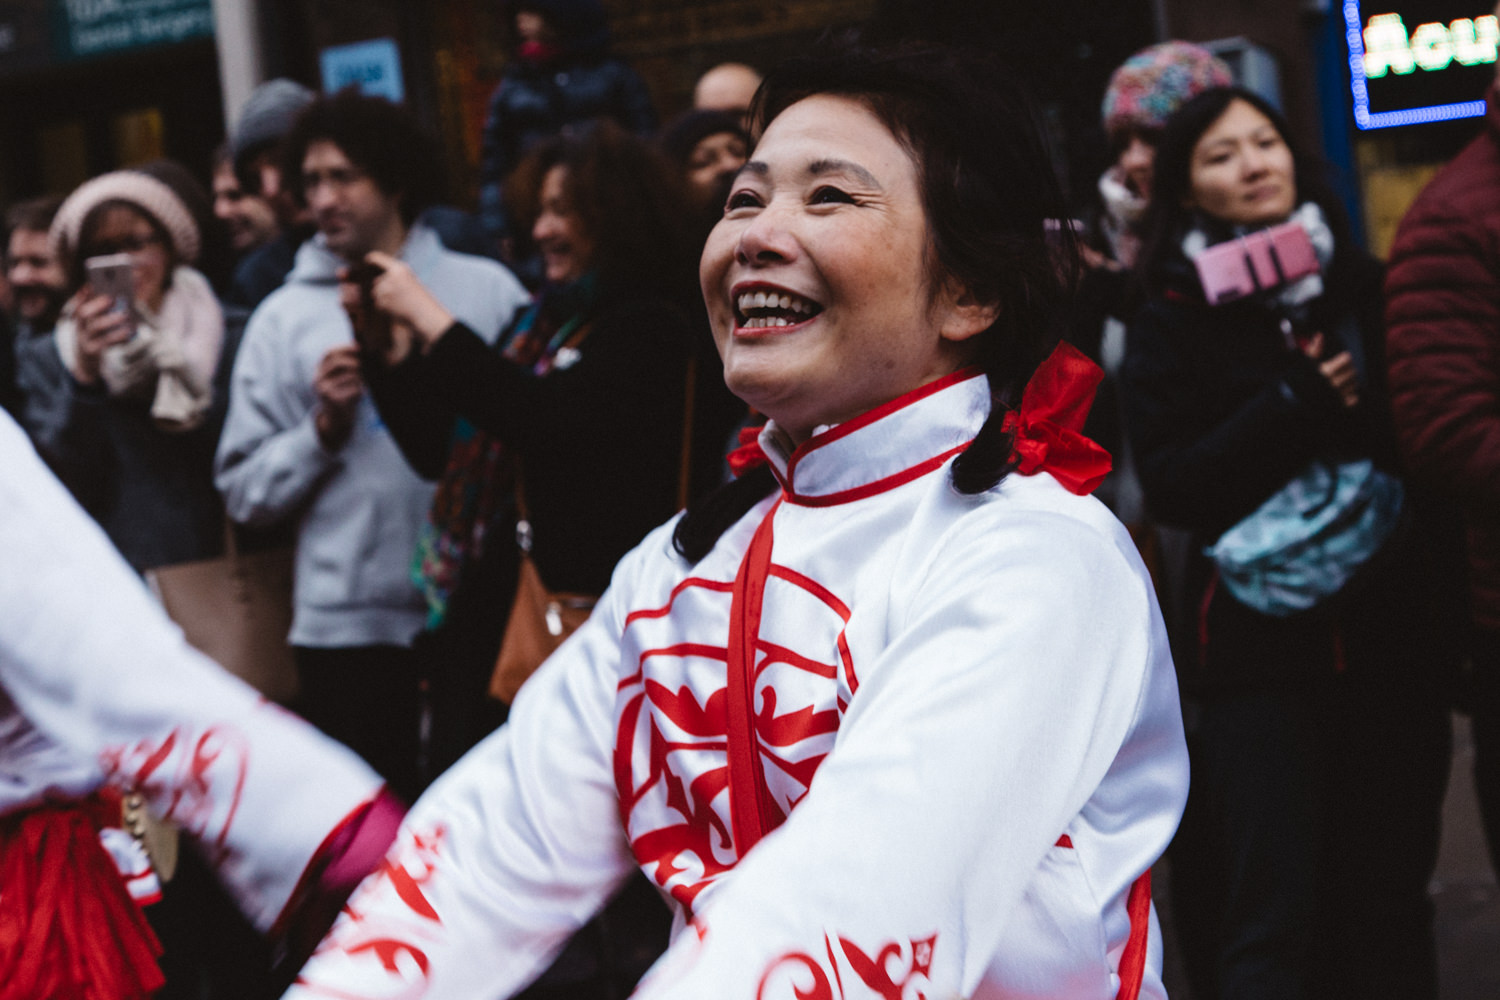 Chinese woman dancing and smiling during the Chinese New Year Parade in London